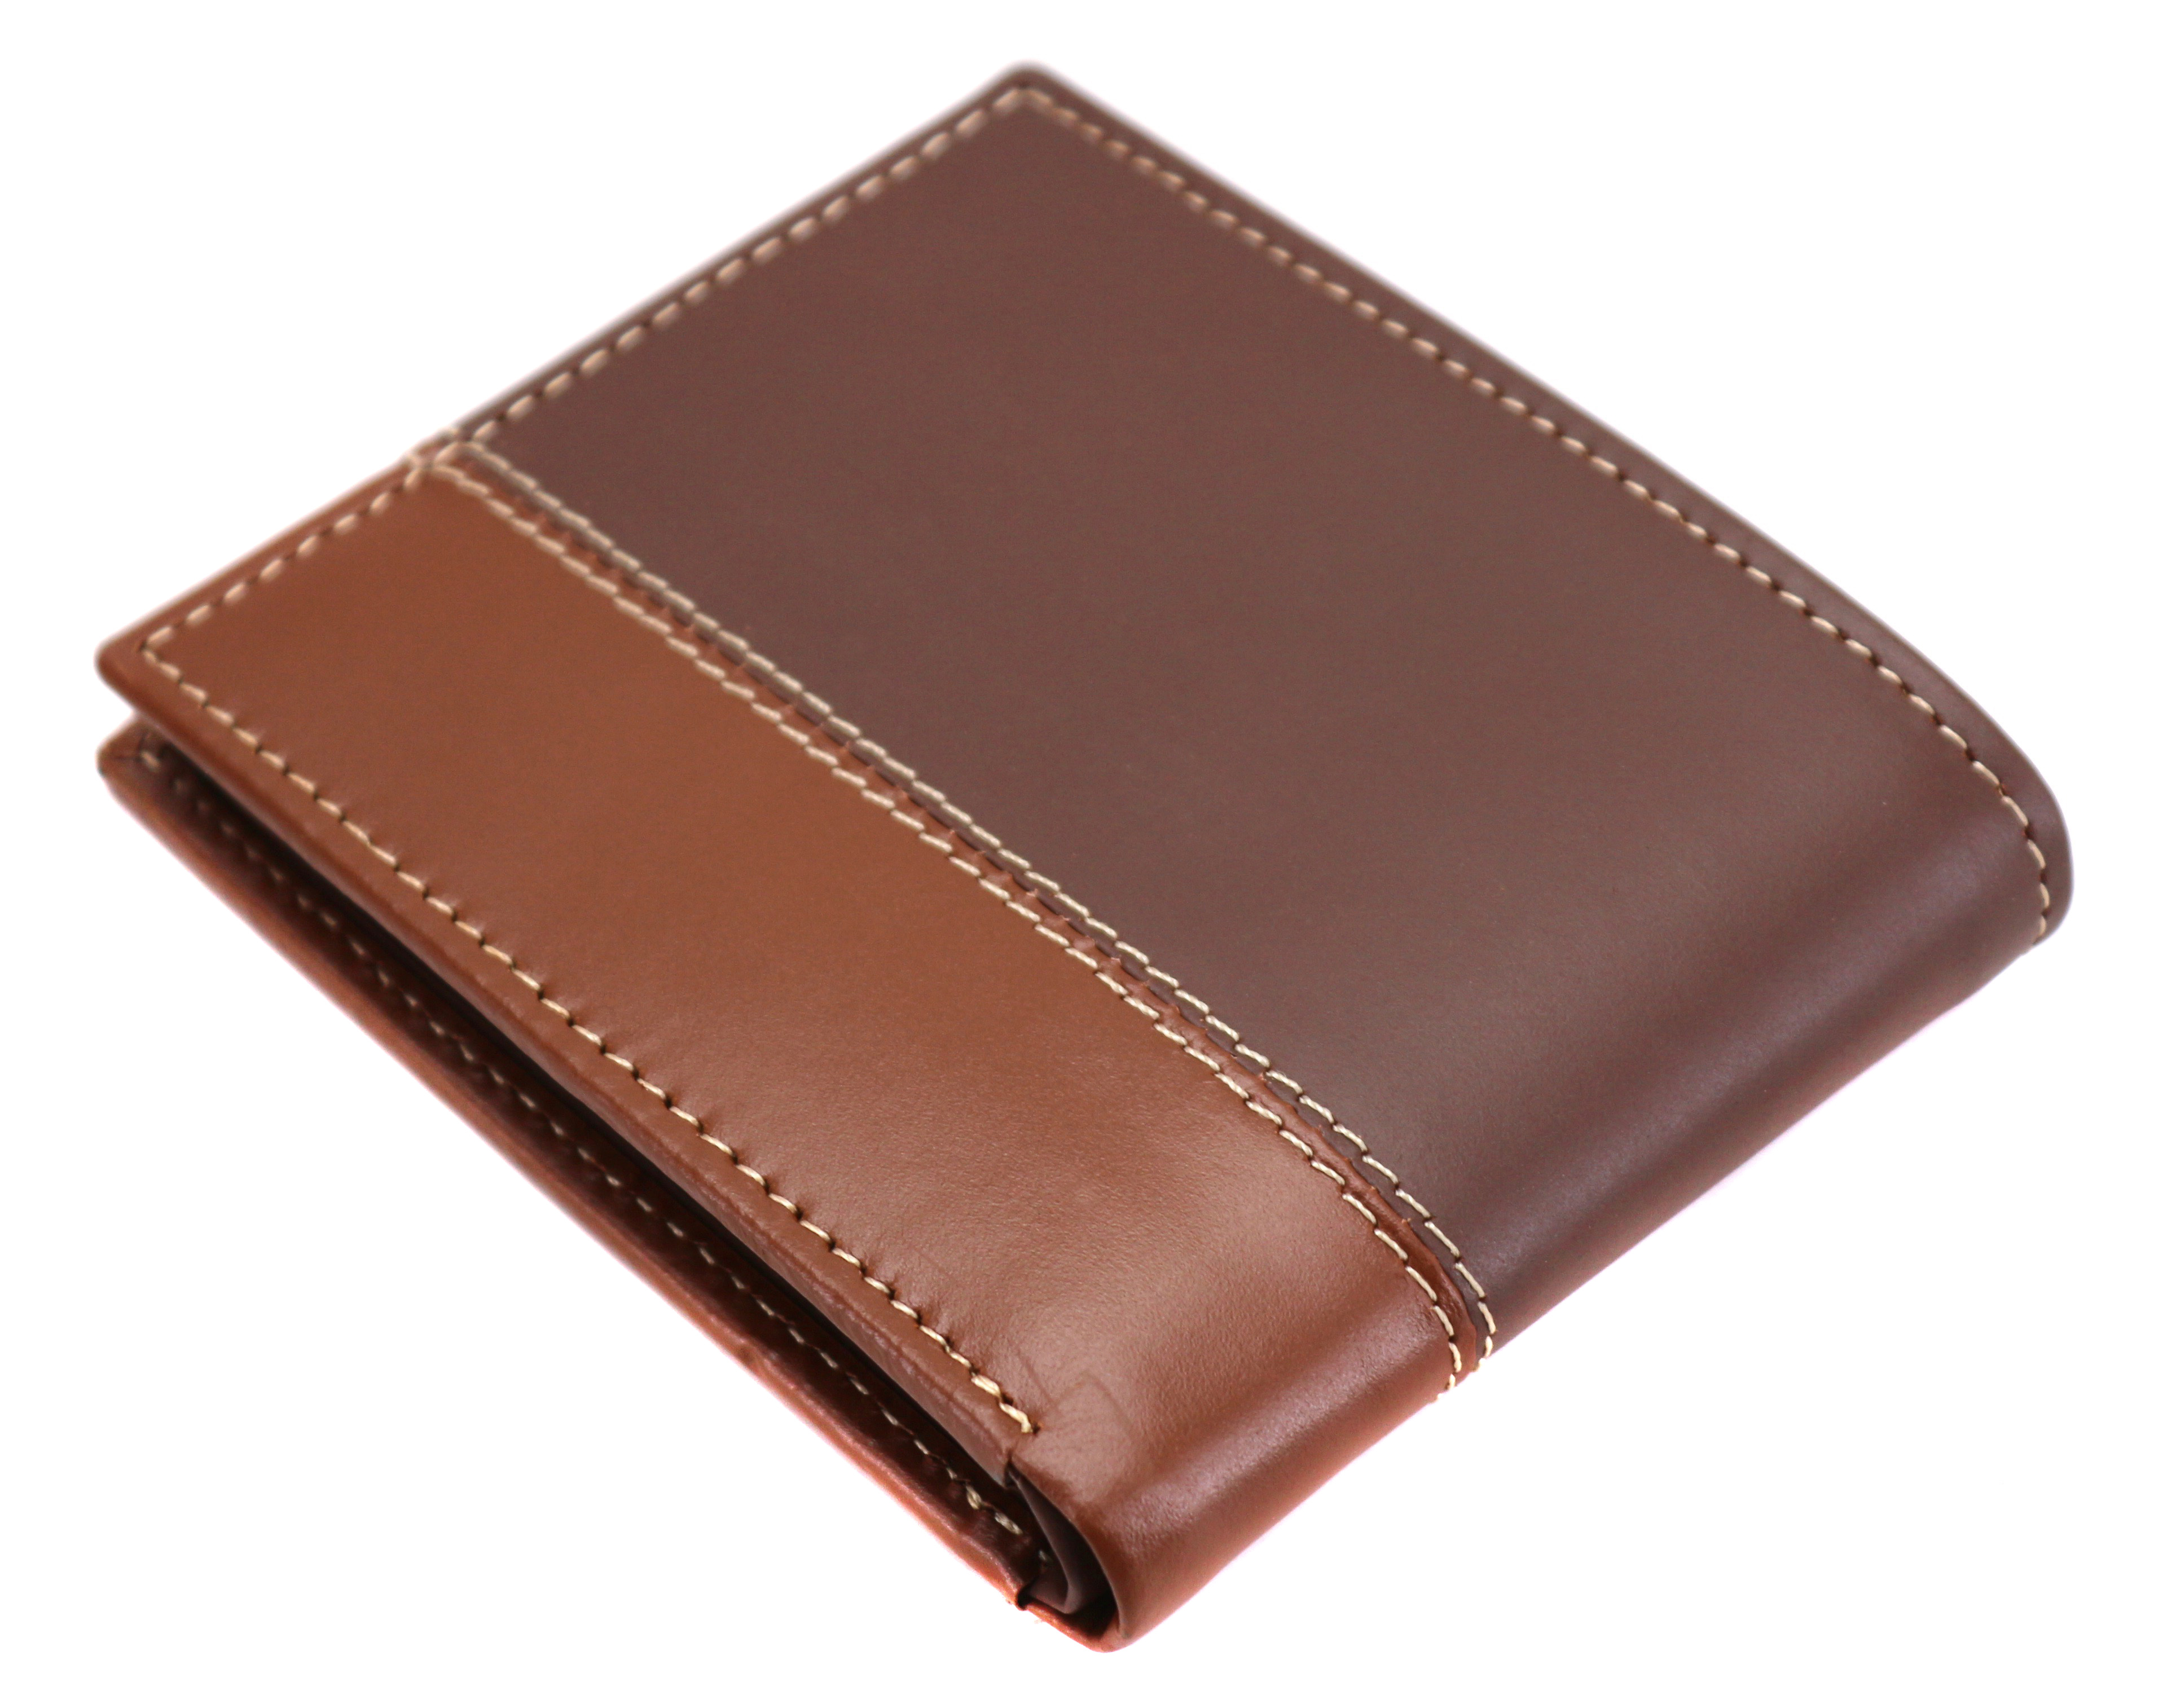 Timberland-Men-039-s-Genuine-Two-Tone-Leather-Credit-Card-Billfold-Commuter-Wallet thumbnail 37